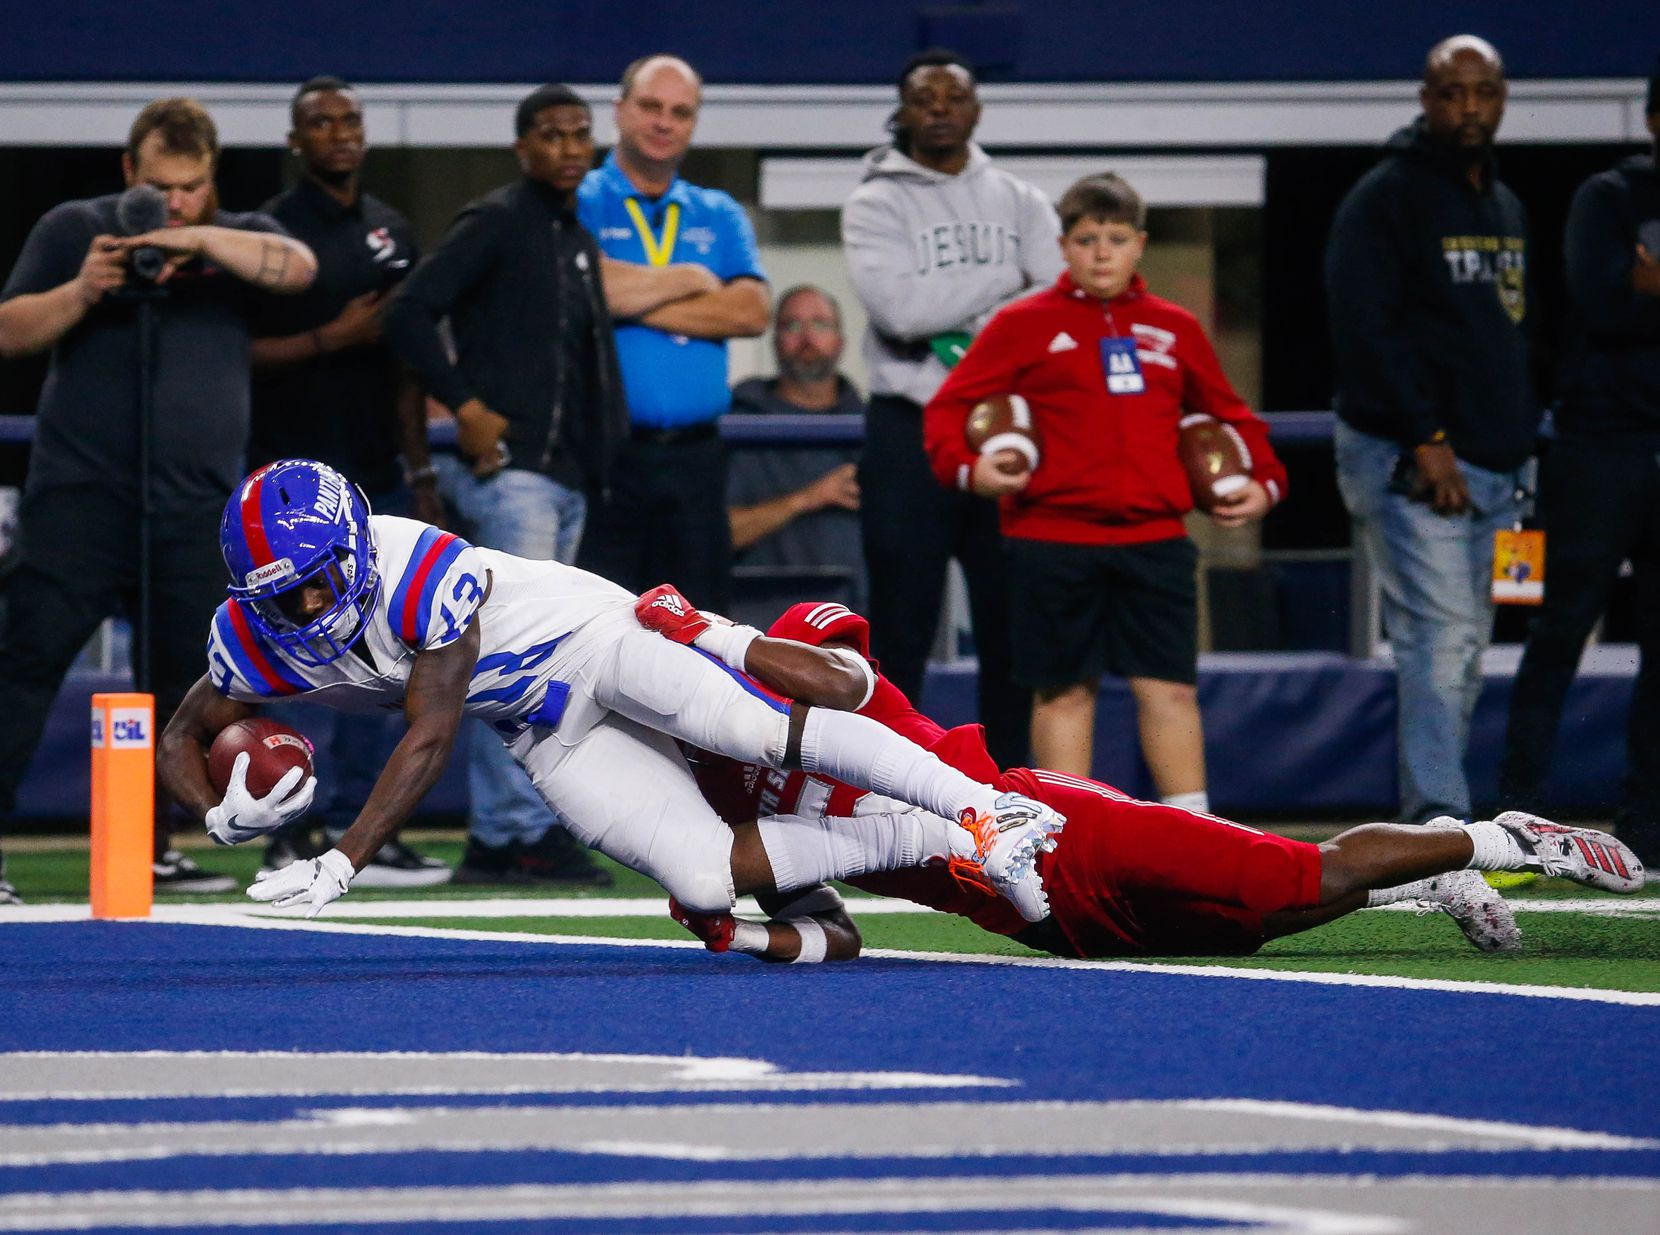 Duncanville's Roderick Daniels (13) scores a touchdown while being tackled by North Shore's Upton Stout (5) in the second quarter of a Class 6A Division I state championship game at the AT&T Stadium in Arlington, on Saturday, December 21, 2019. The game is tied 17-17 at halftime. (Juan Figueroa/The Dallas Morning News)